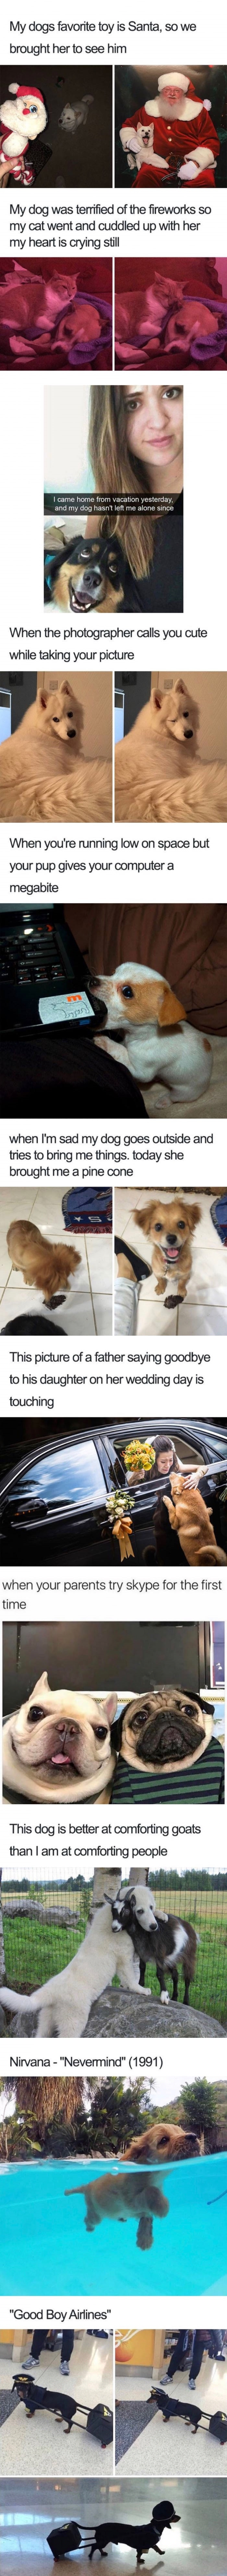 Dog memes are so heartwarming